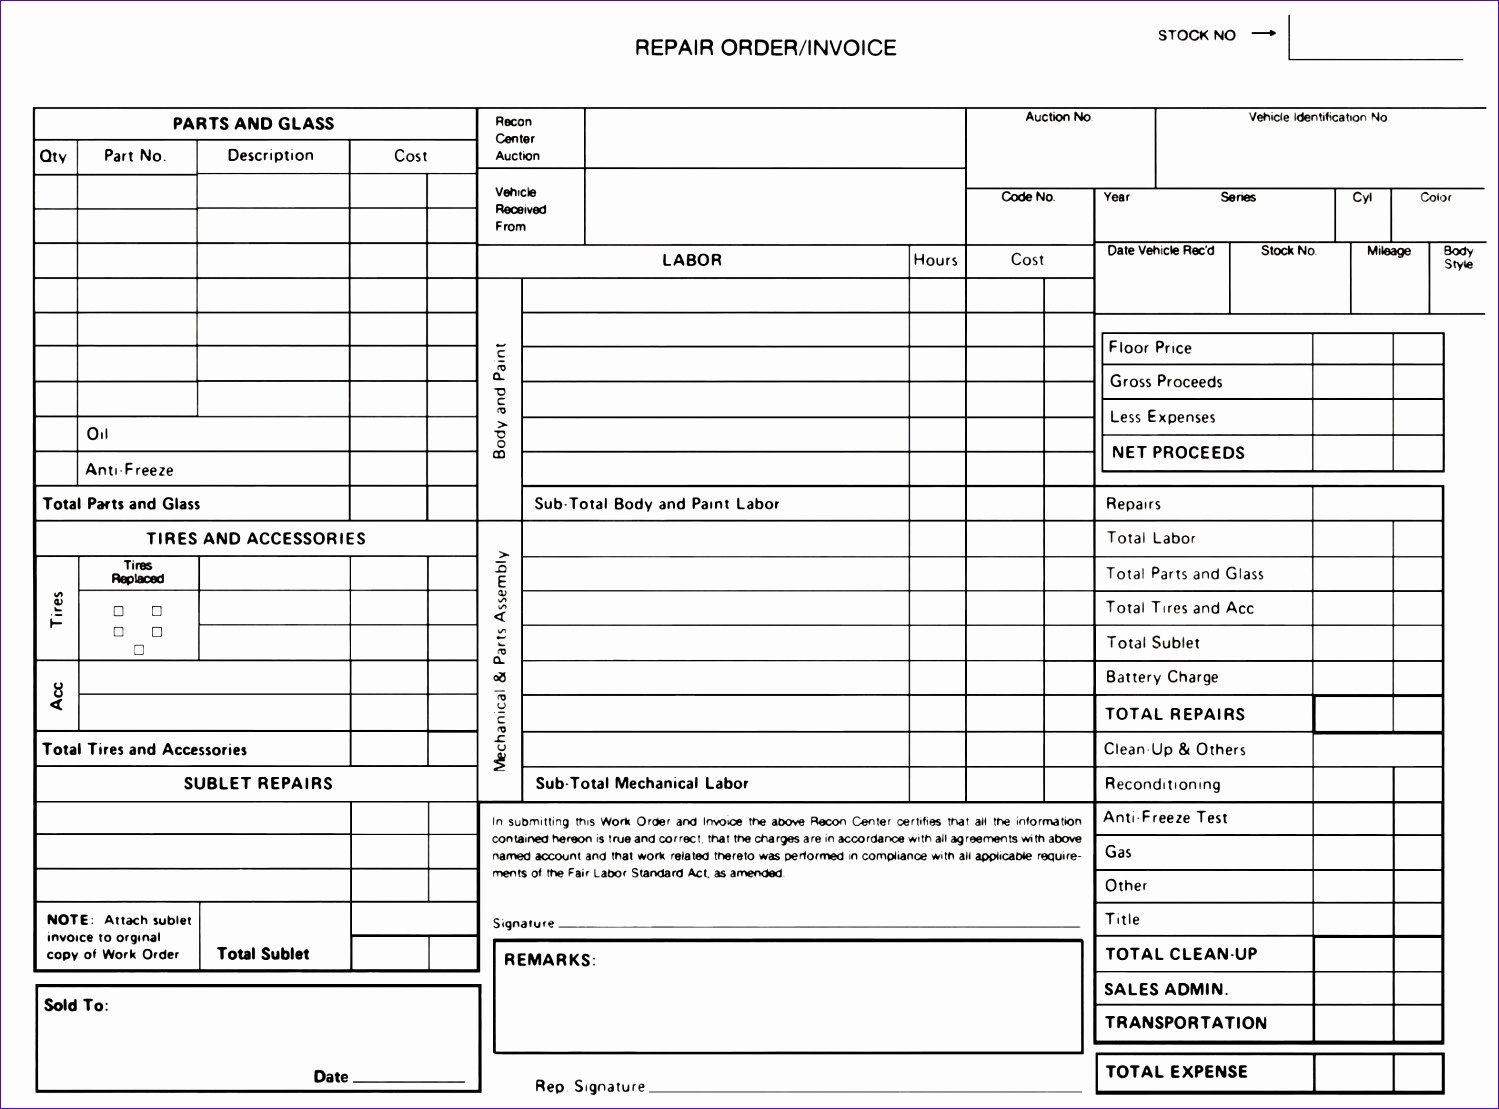 Auto Repair form Template Luxury 6 Auto Repair order Template Excel Exceltemplates